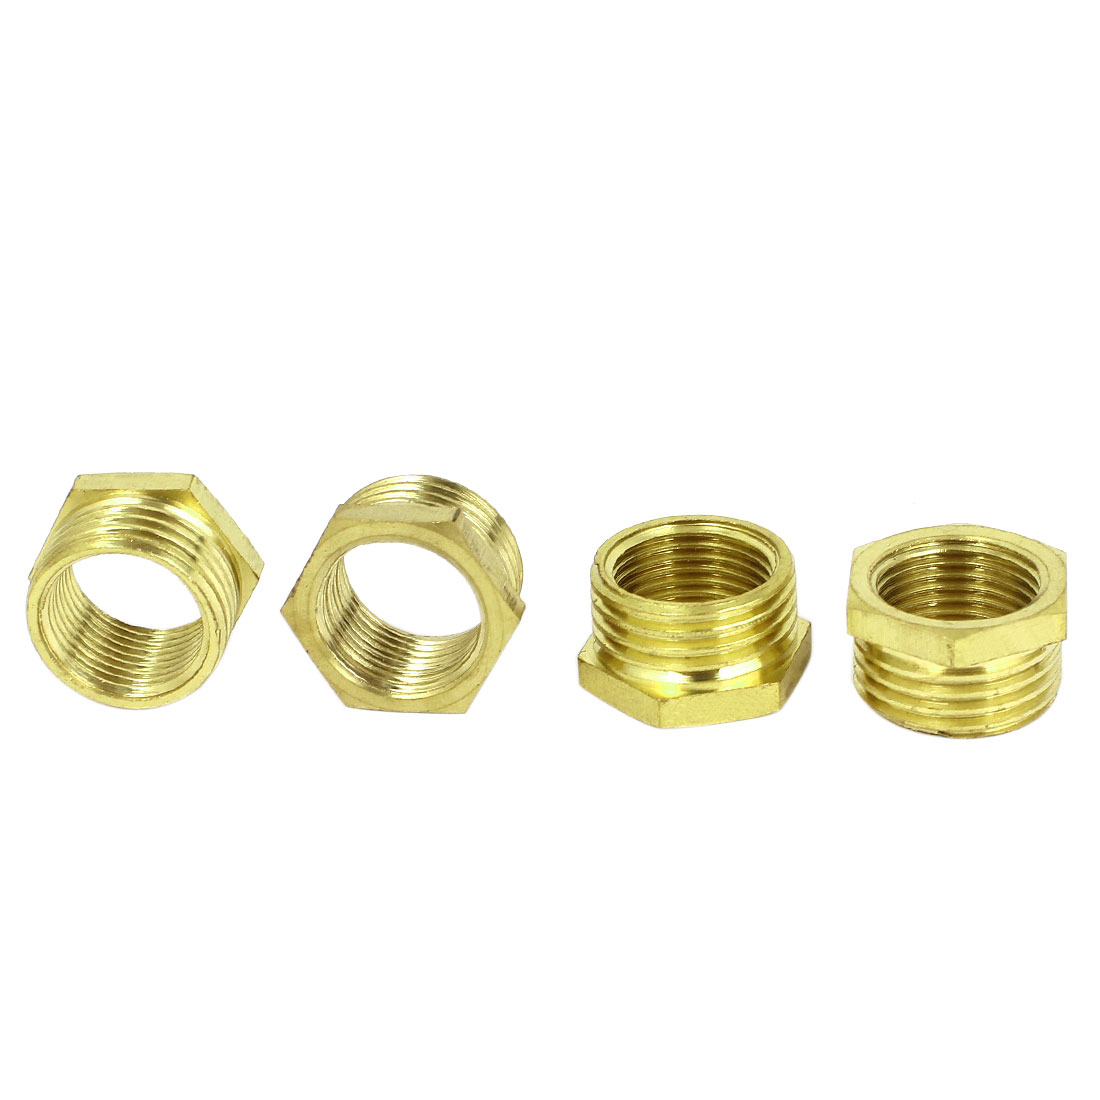 3/8BSP x 1/2 BSP M/F Threaded Hex Head Gold Tone Brass Bushing Piping Fitting Connector 4Pcs